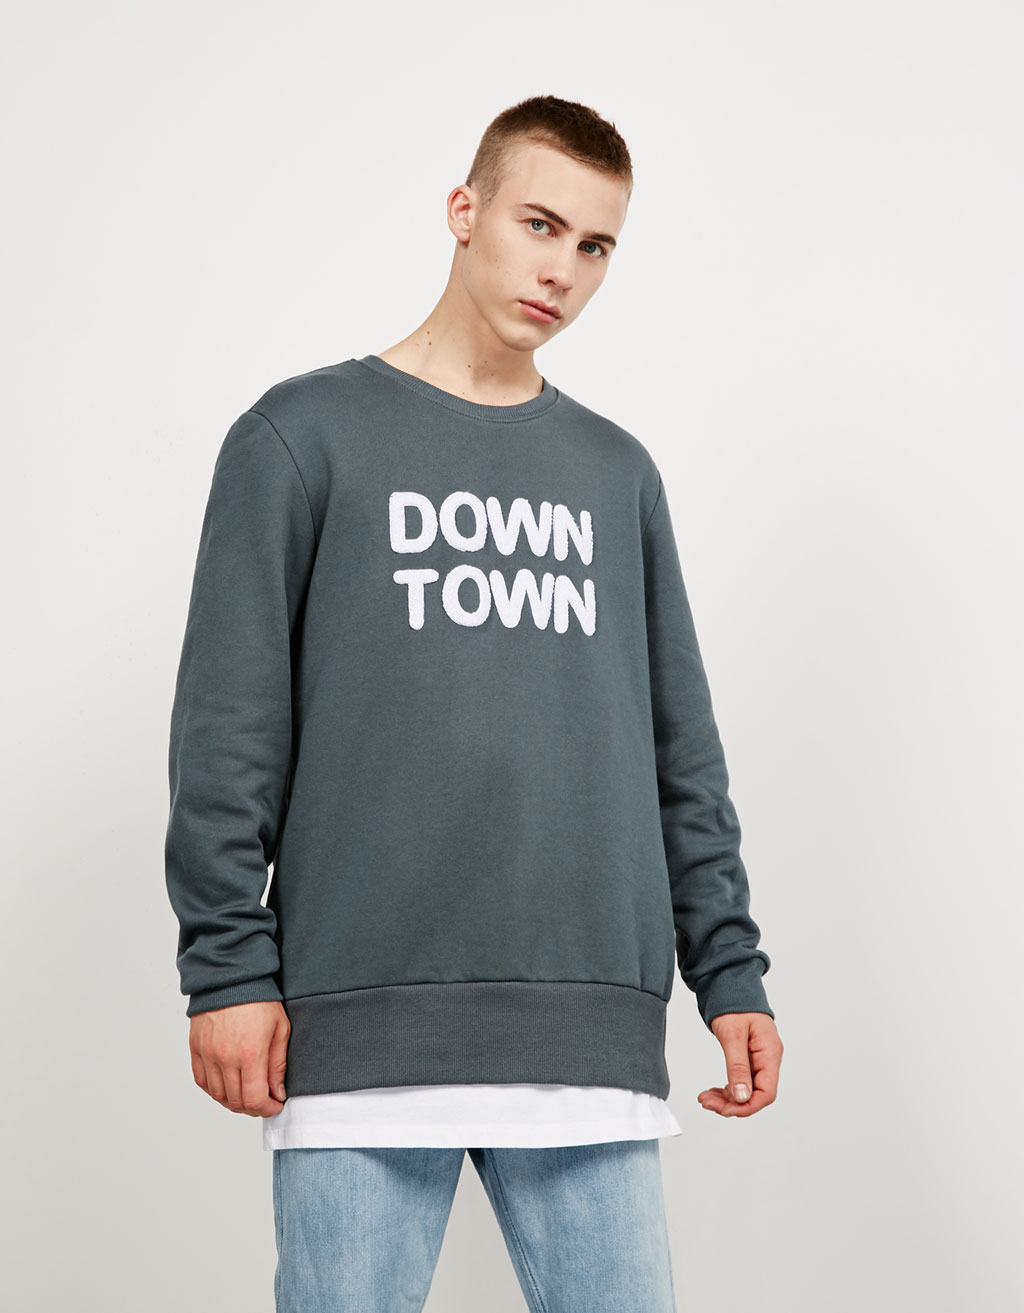 Down town sweatshirt